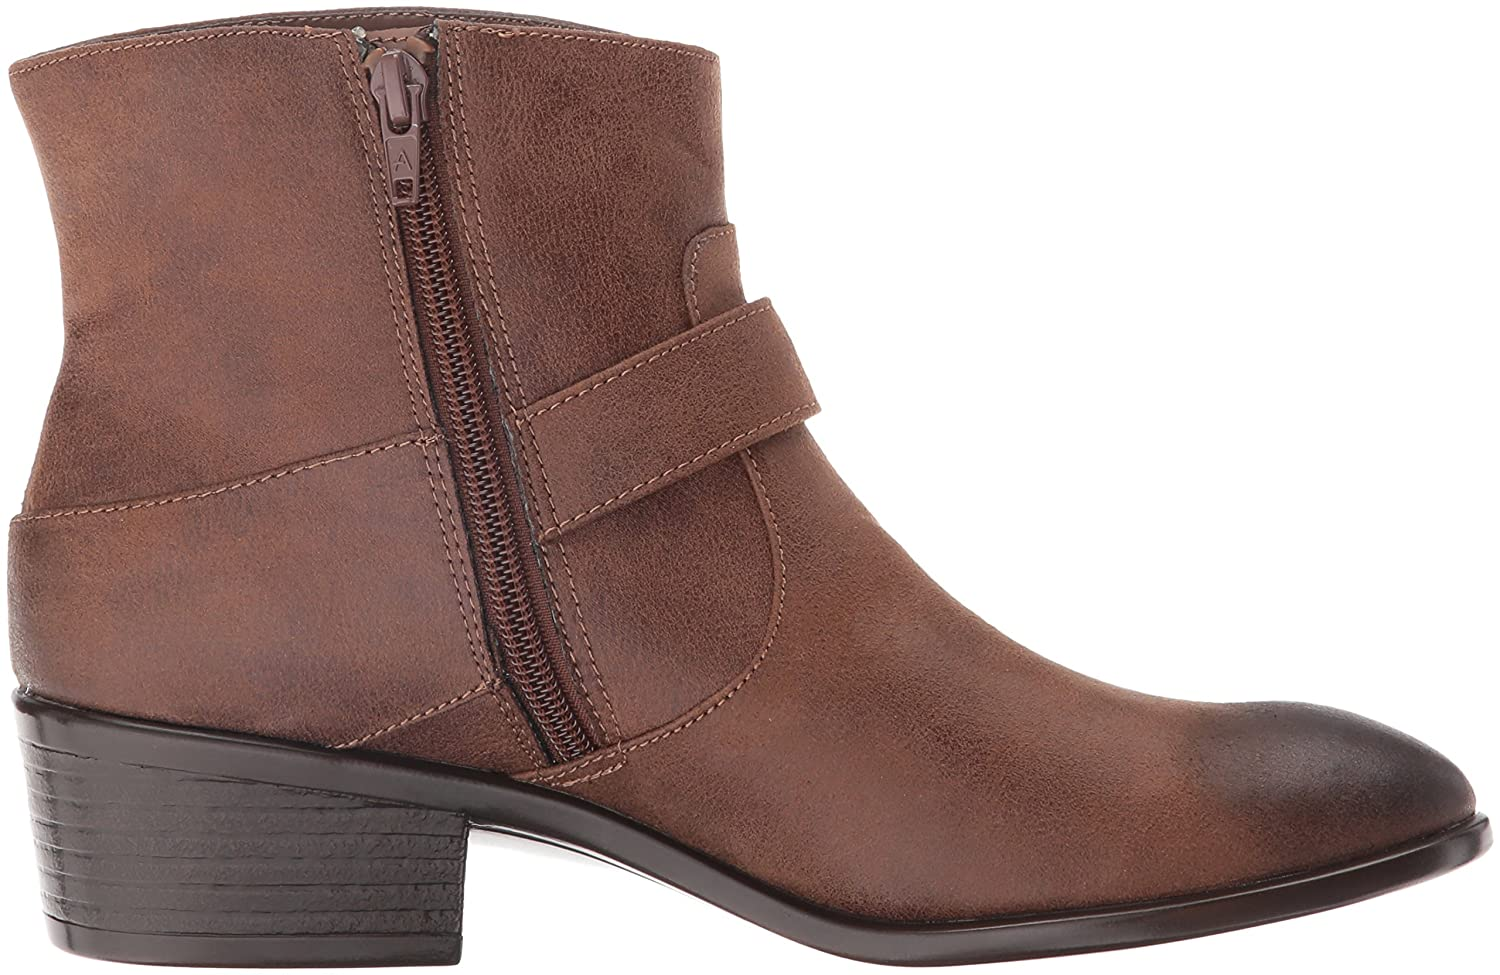 A2 by Aerosoles Womens My Way Boot